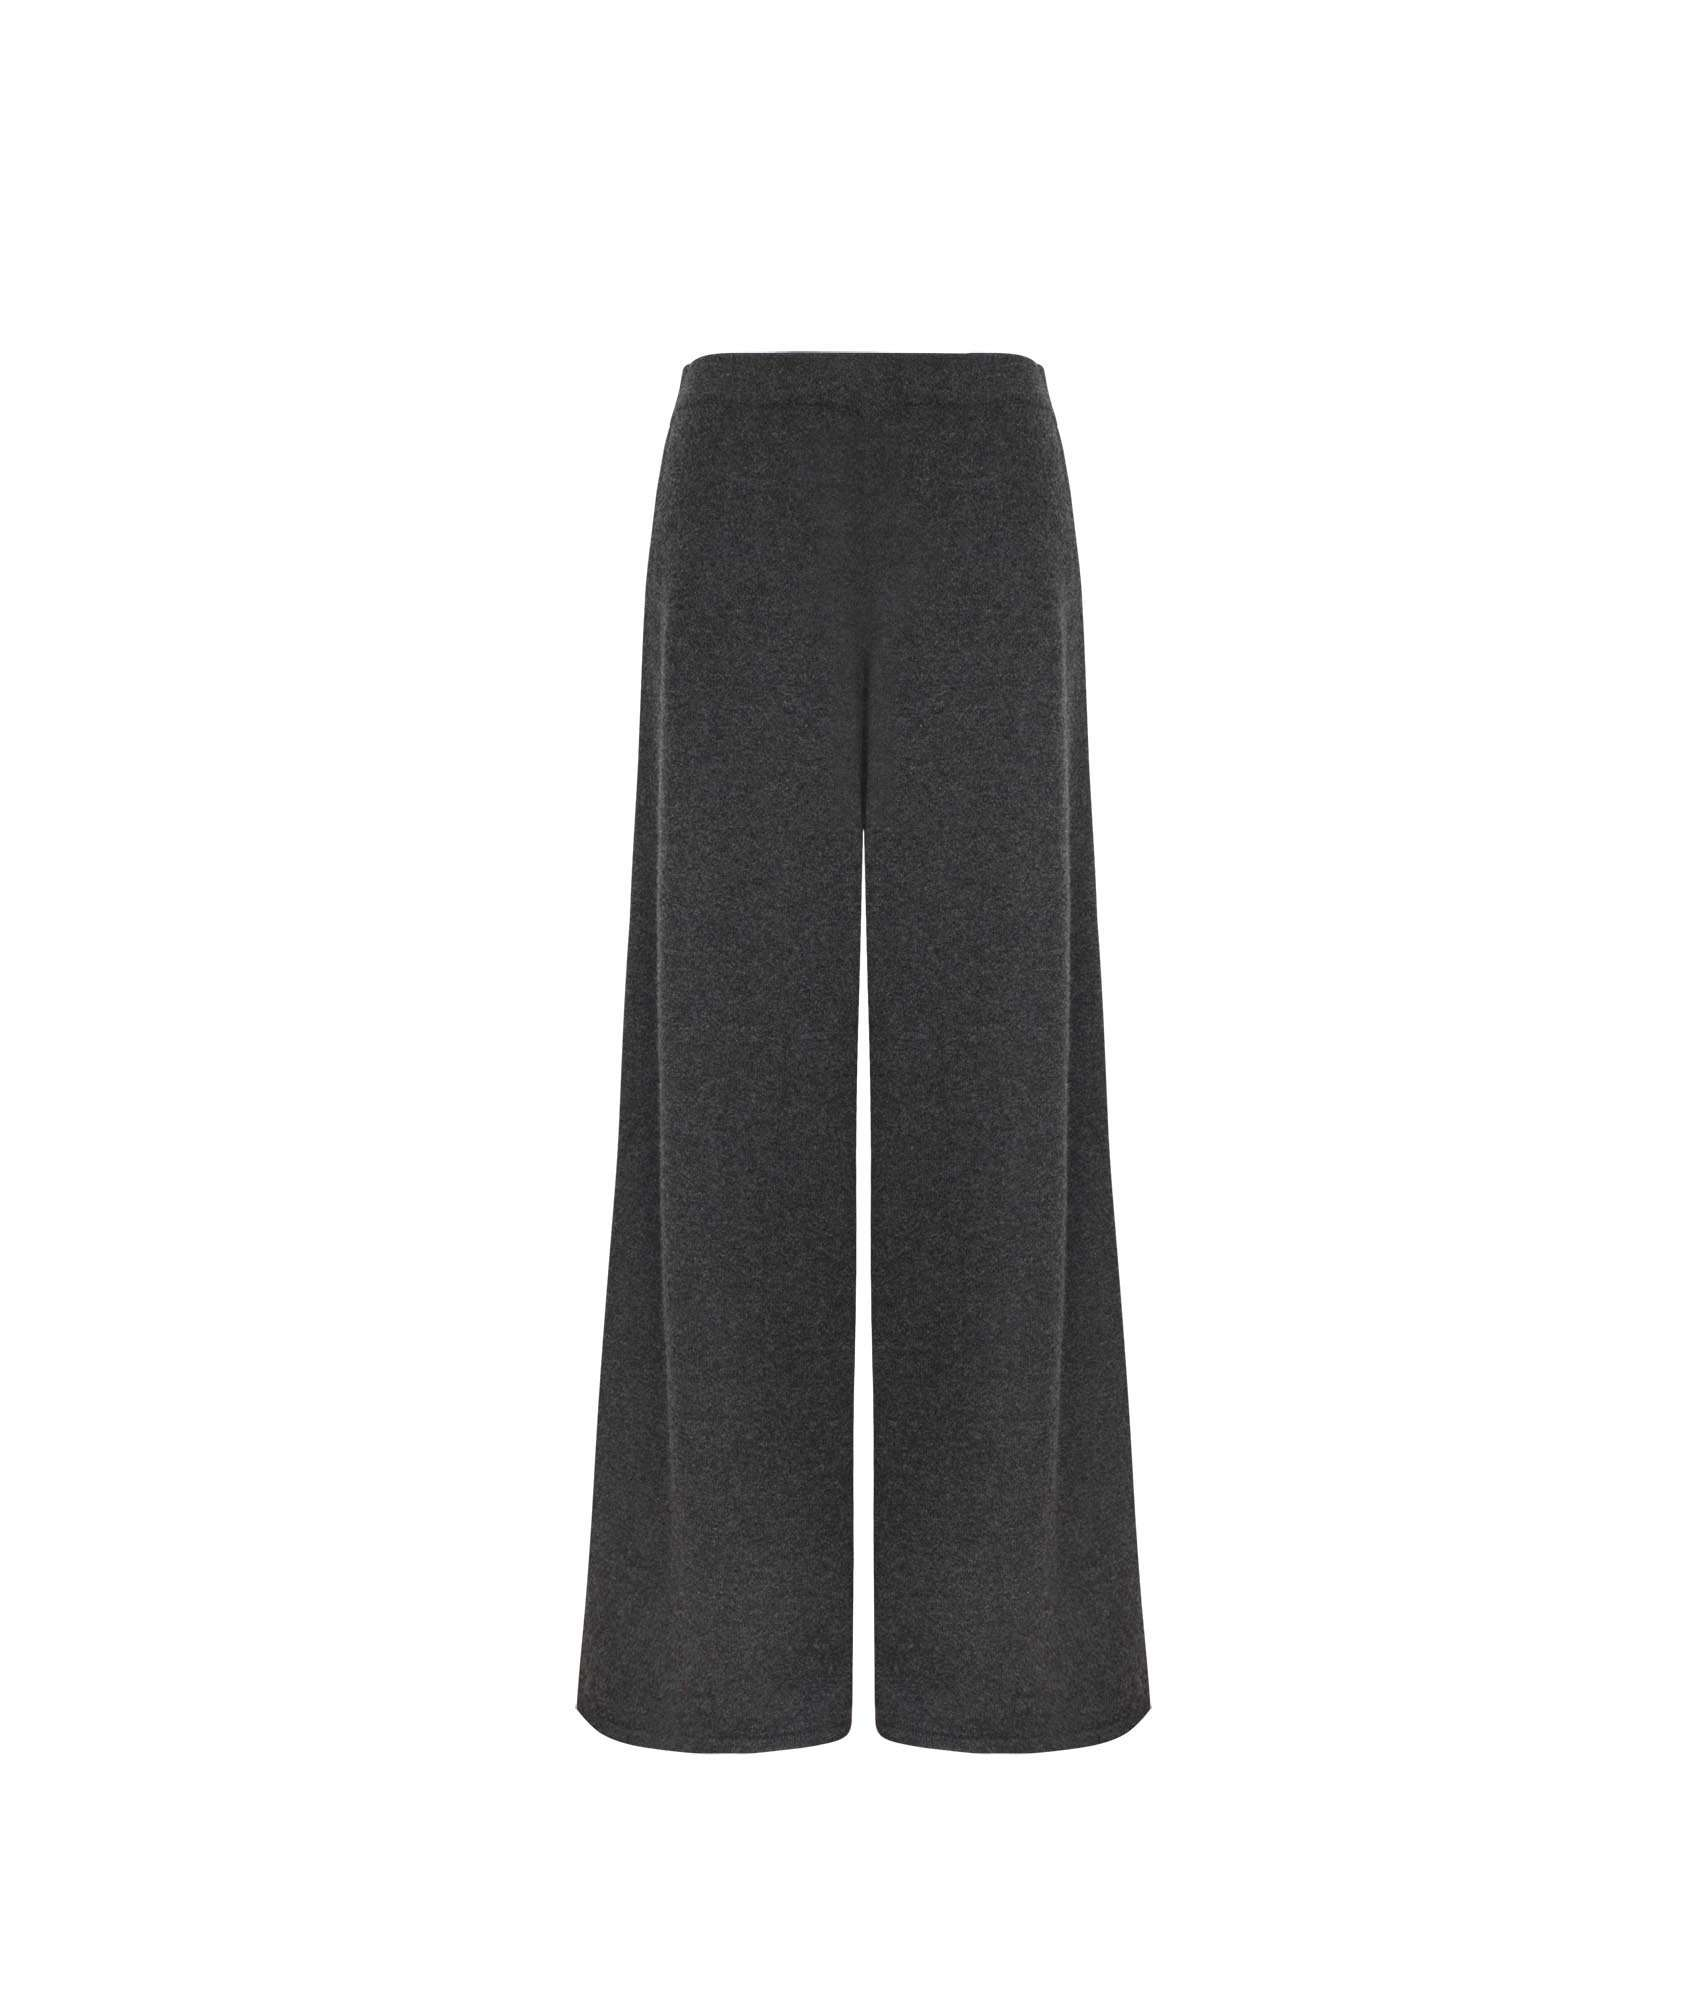 JENNIFER JOANOU New York | Varick Wide Leg Pants